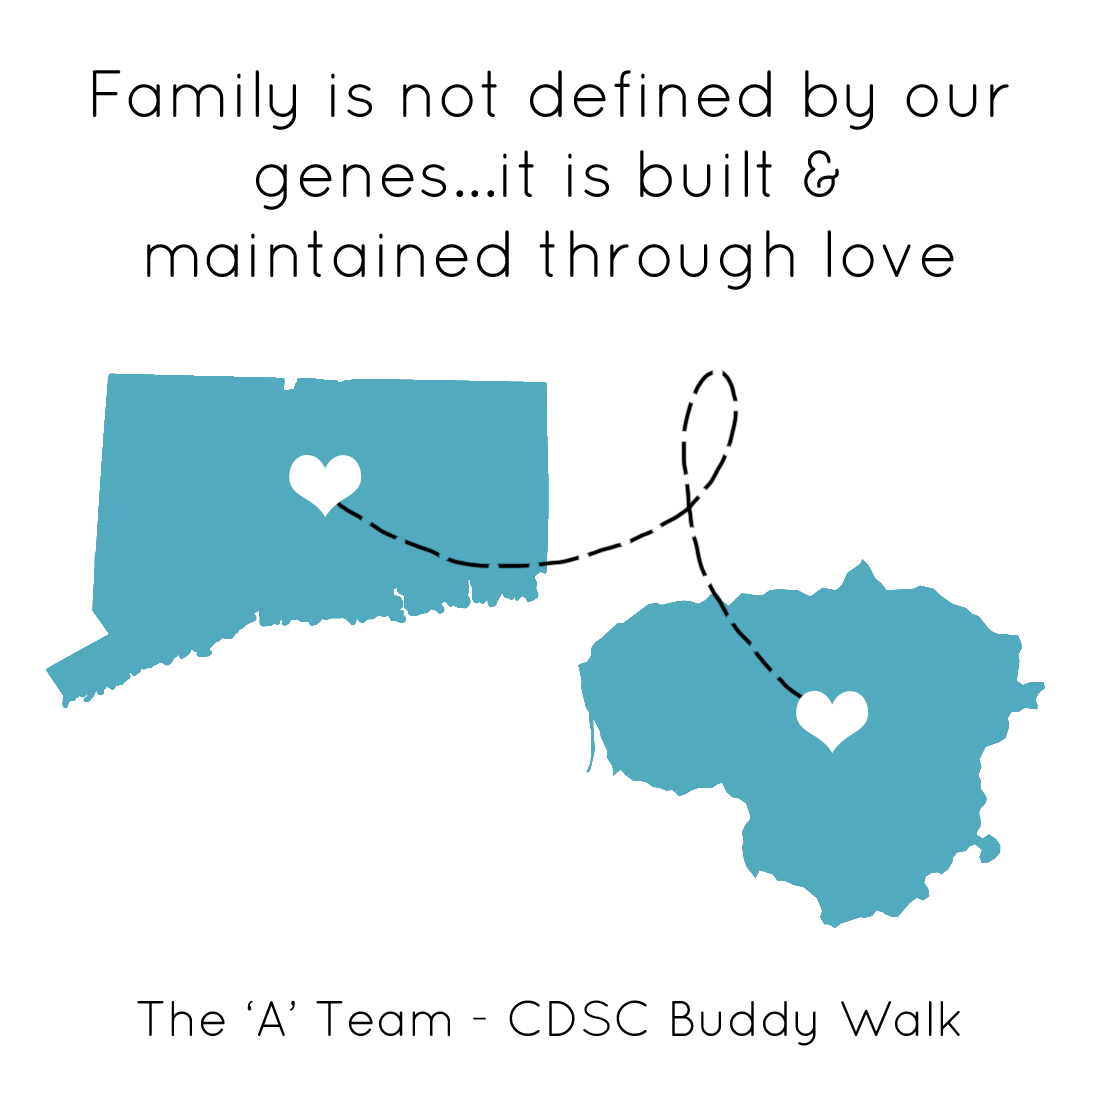 CDSC Buddy Walk - A team